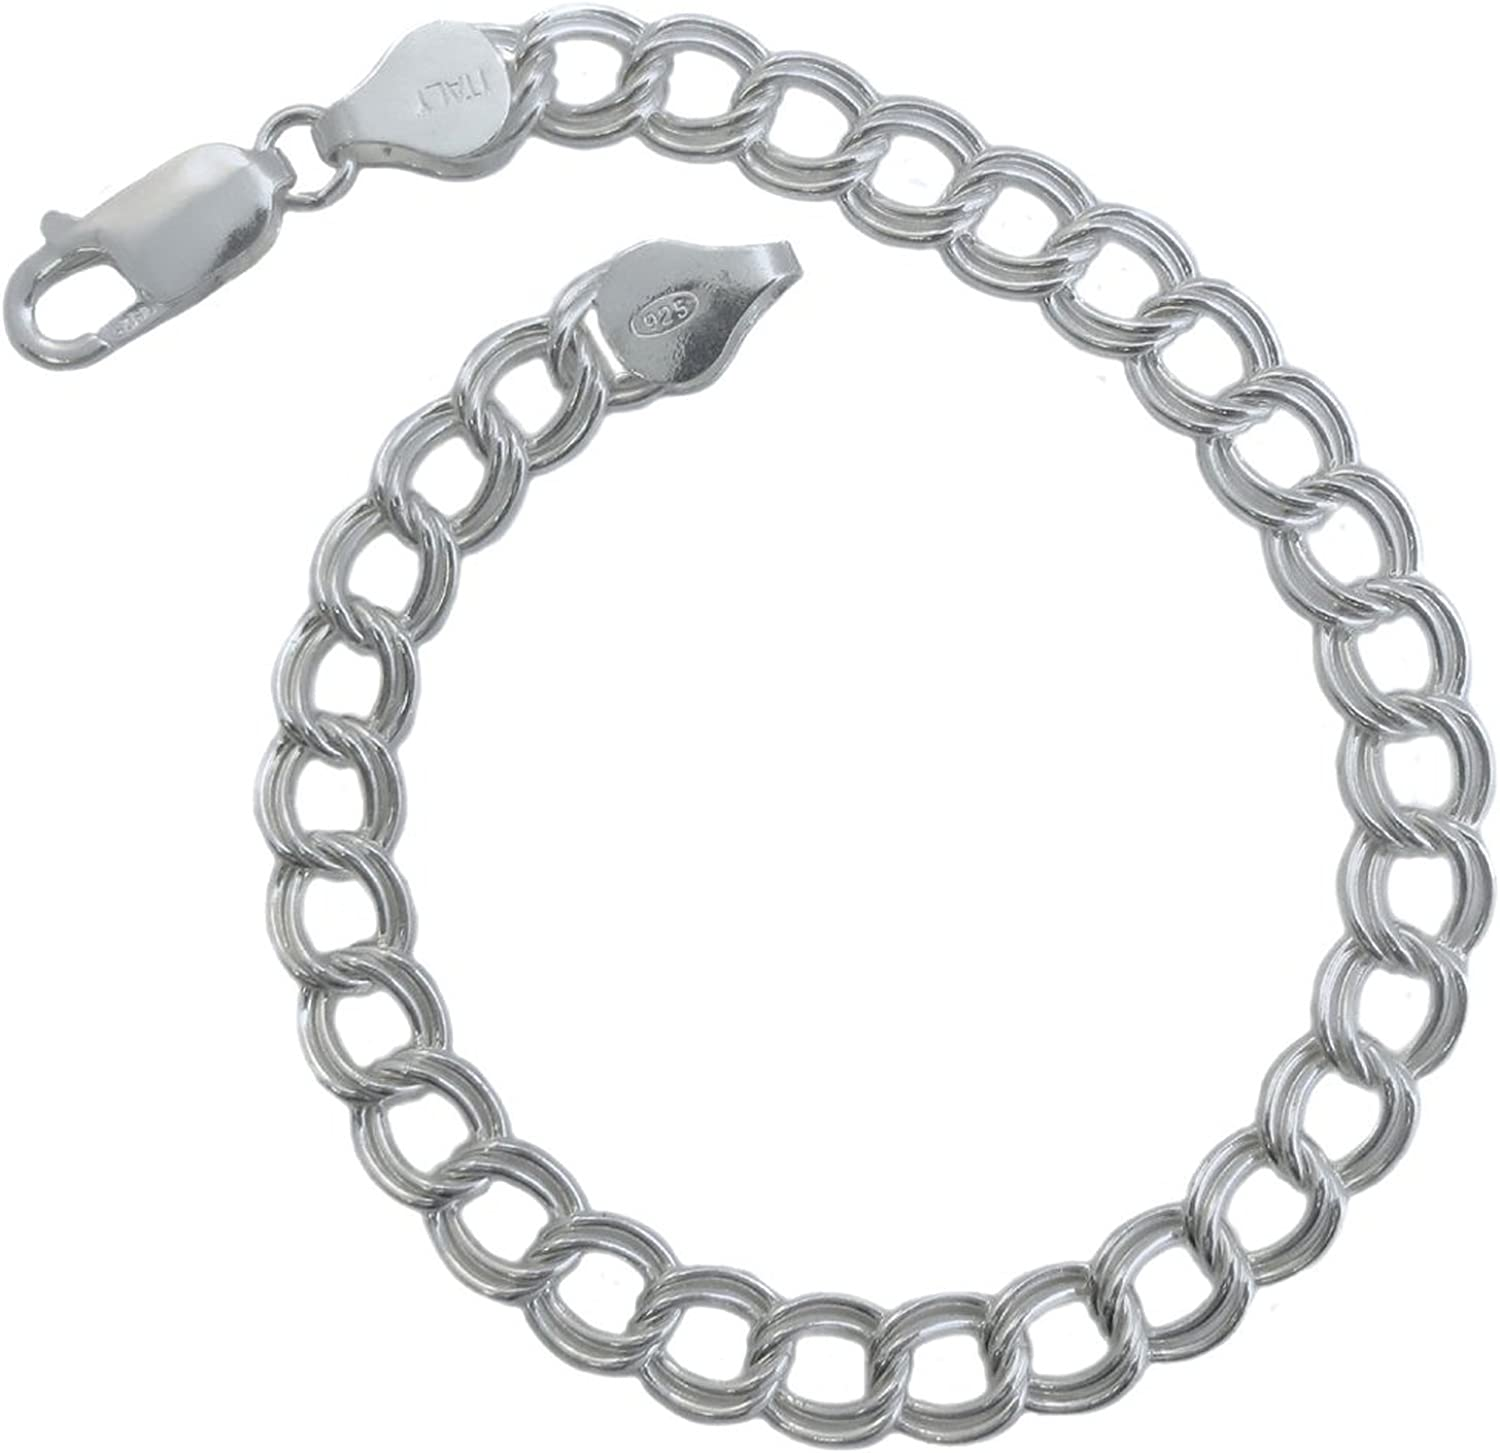 Sterling Silver 7MM /& 8MM Double Link Charm Bracelet Anklet Light Weight Nickel Free